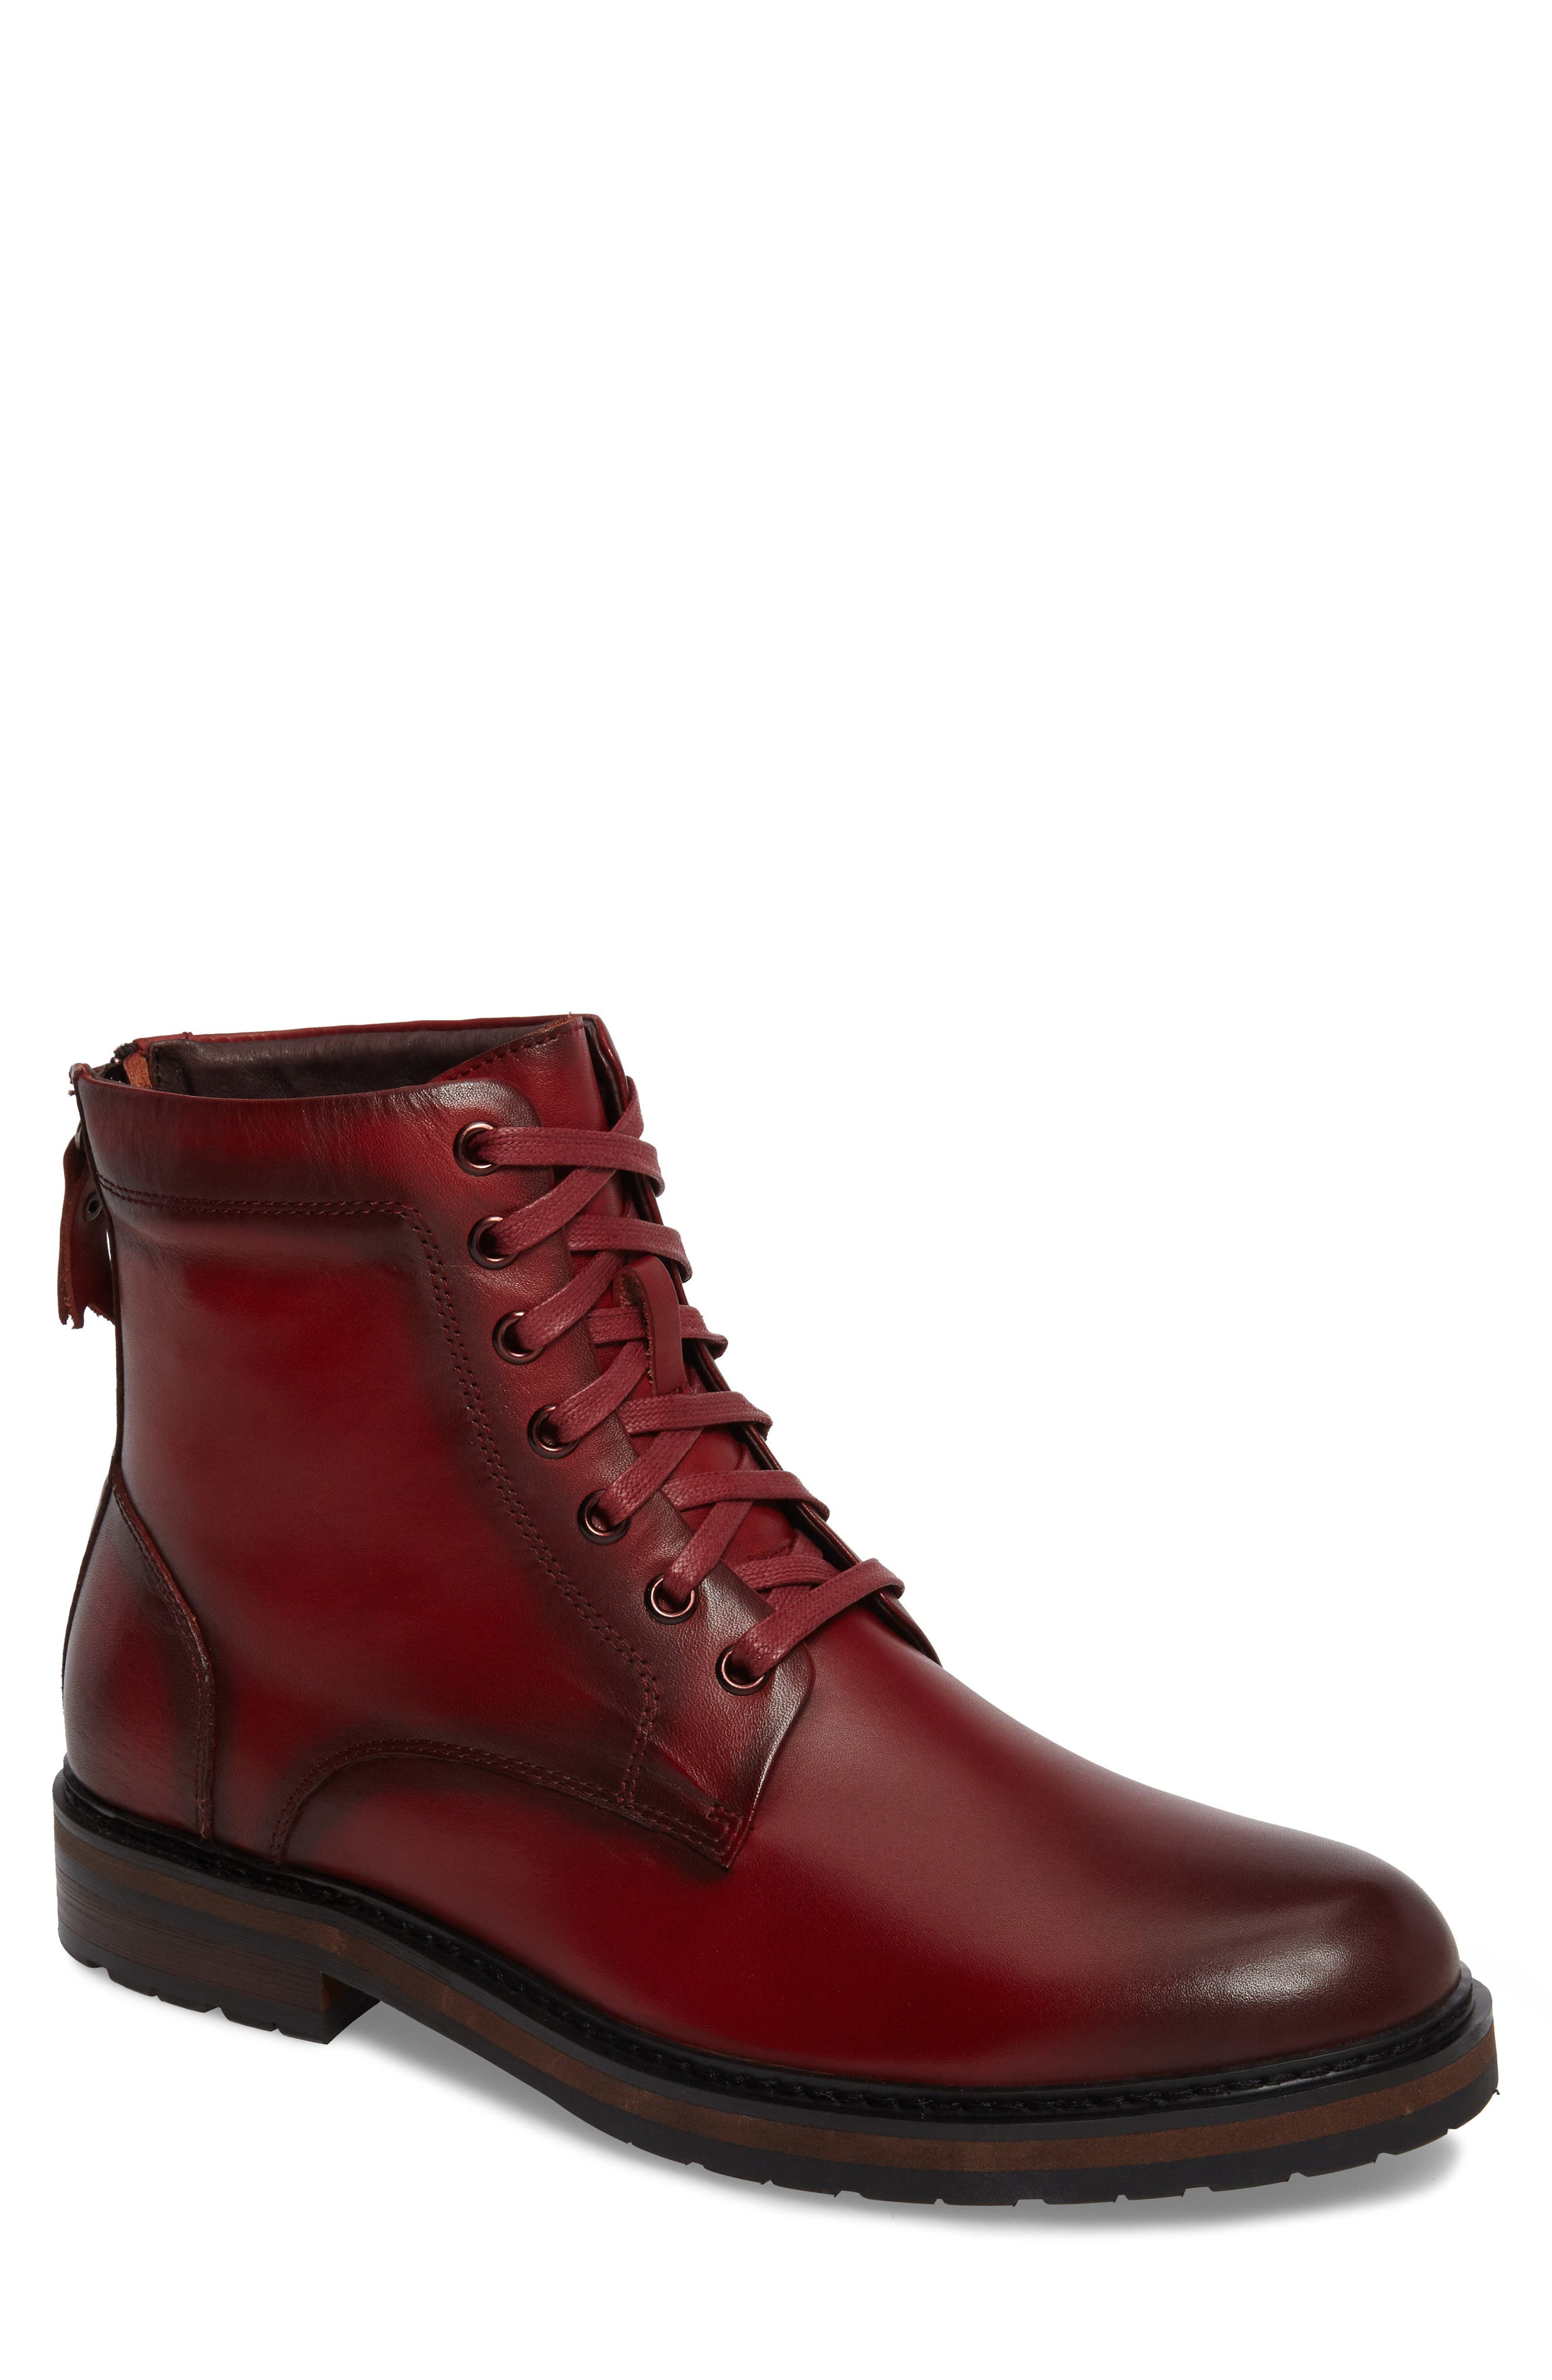 Miro Combat Boot,                         Main,                         color, Wine Leather